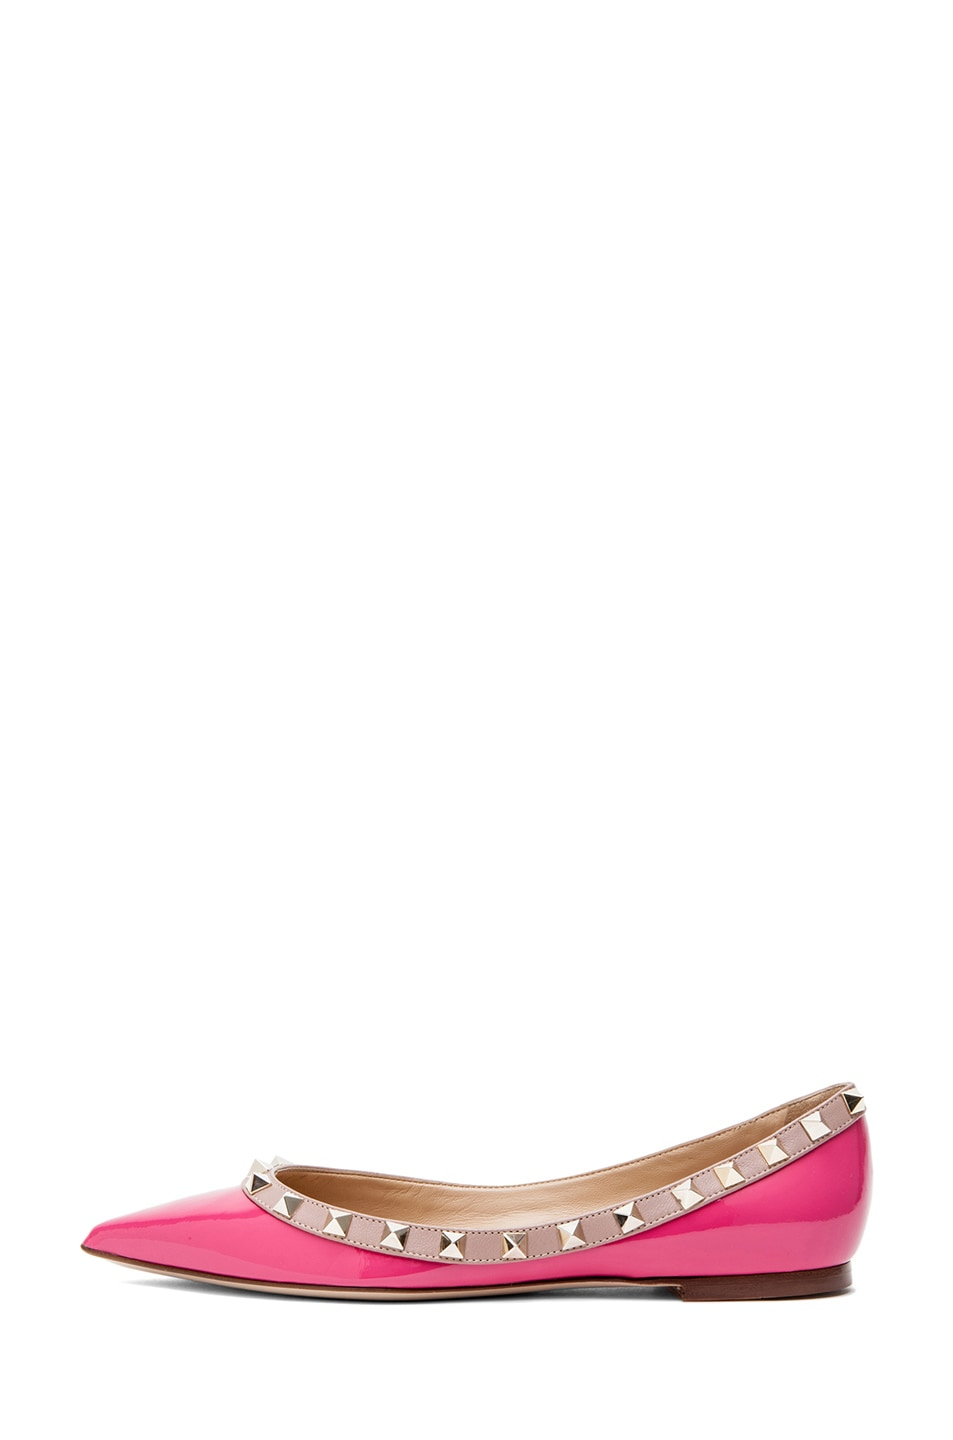 Image 1 of Valentino Rockstud Patent Leather Ballerina Flat in Pink